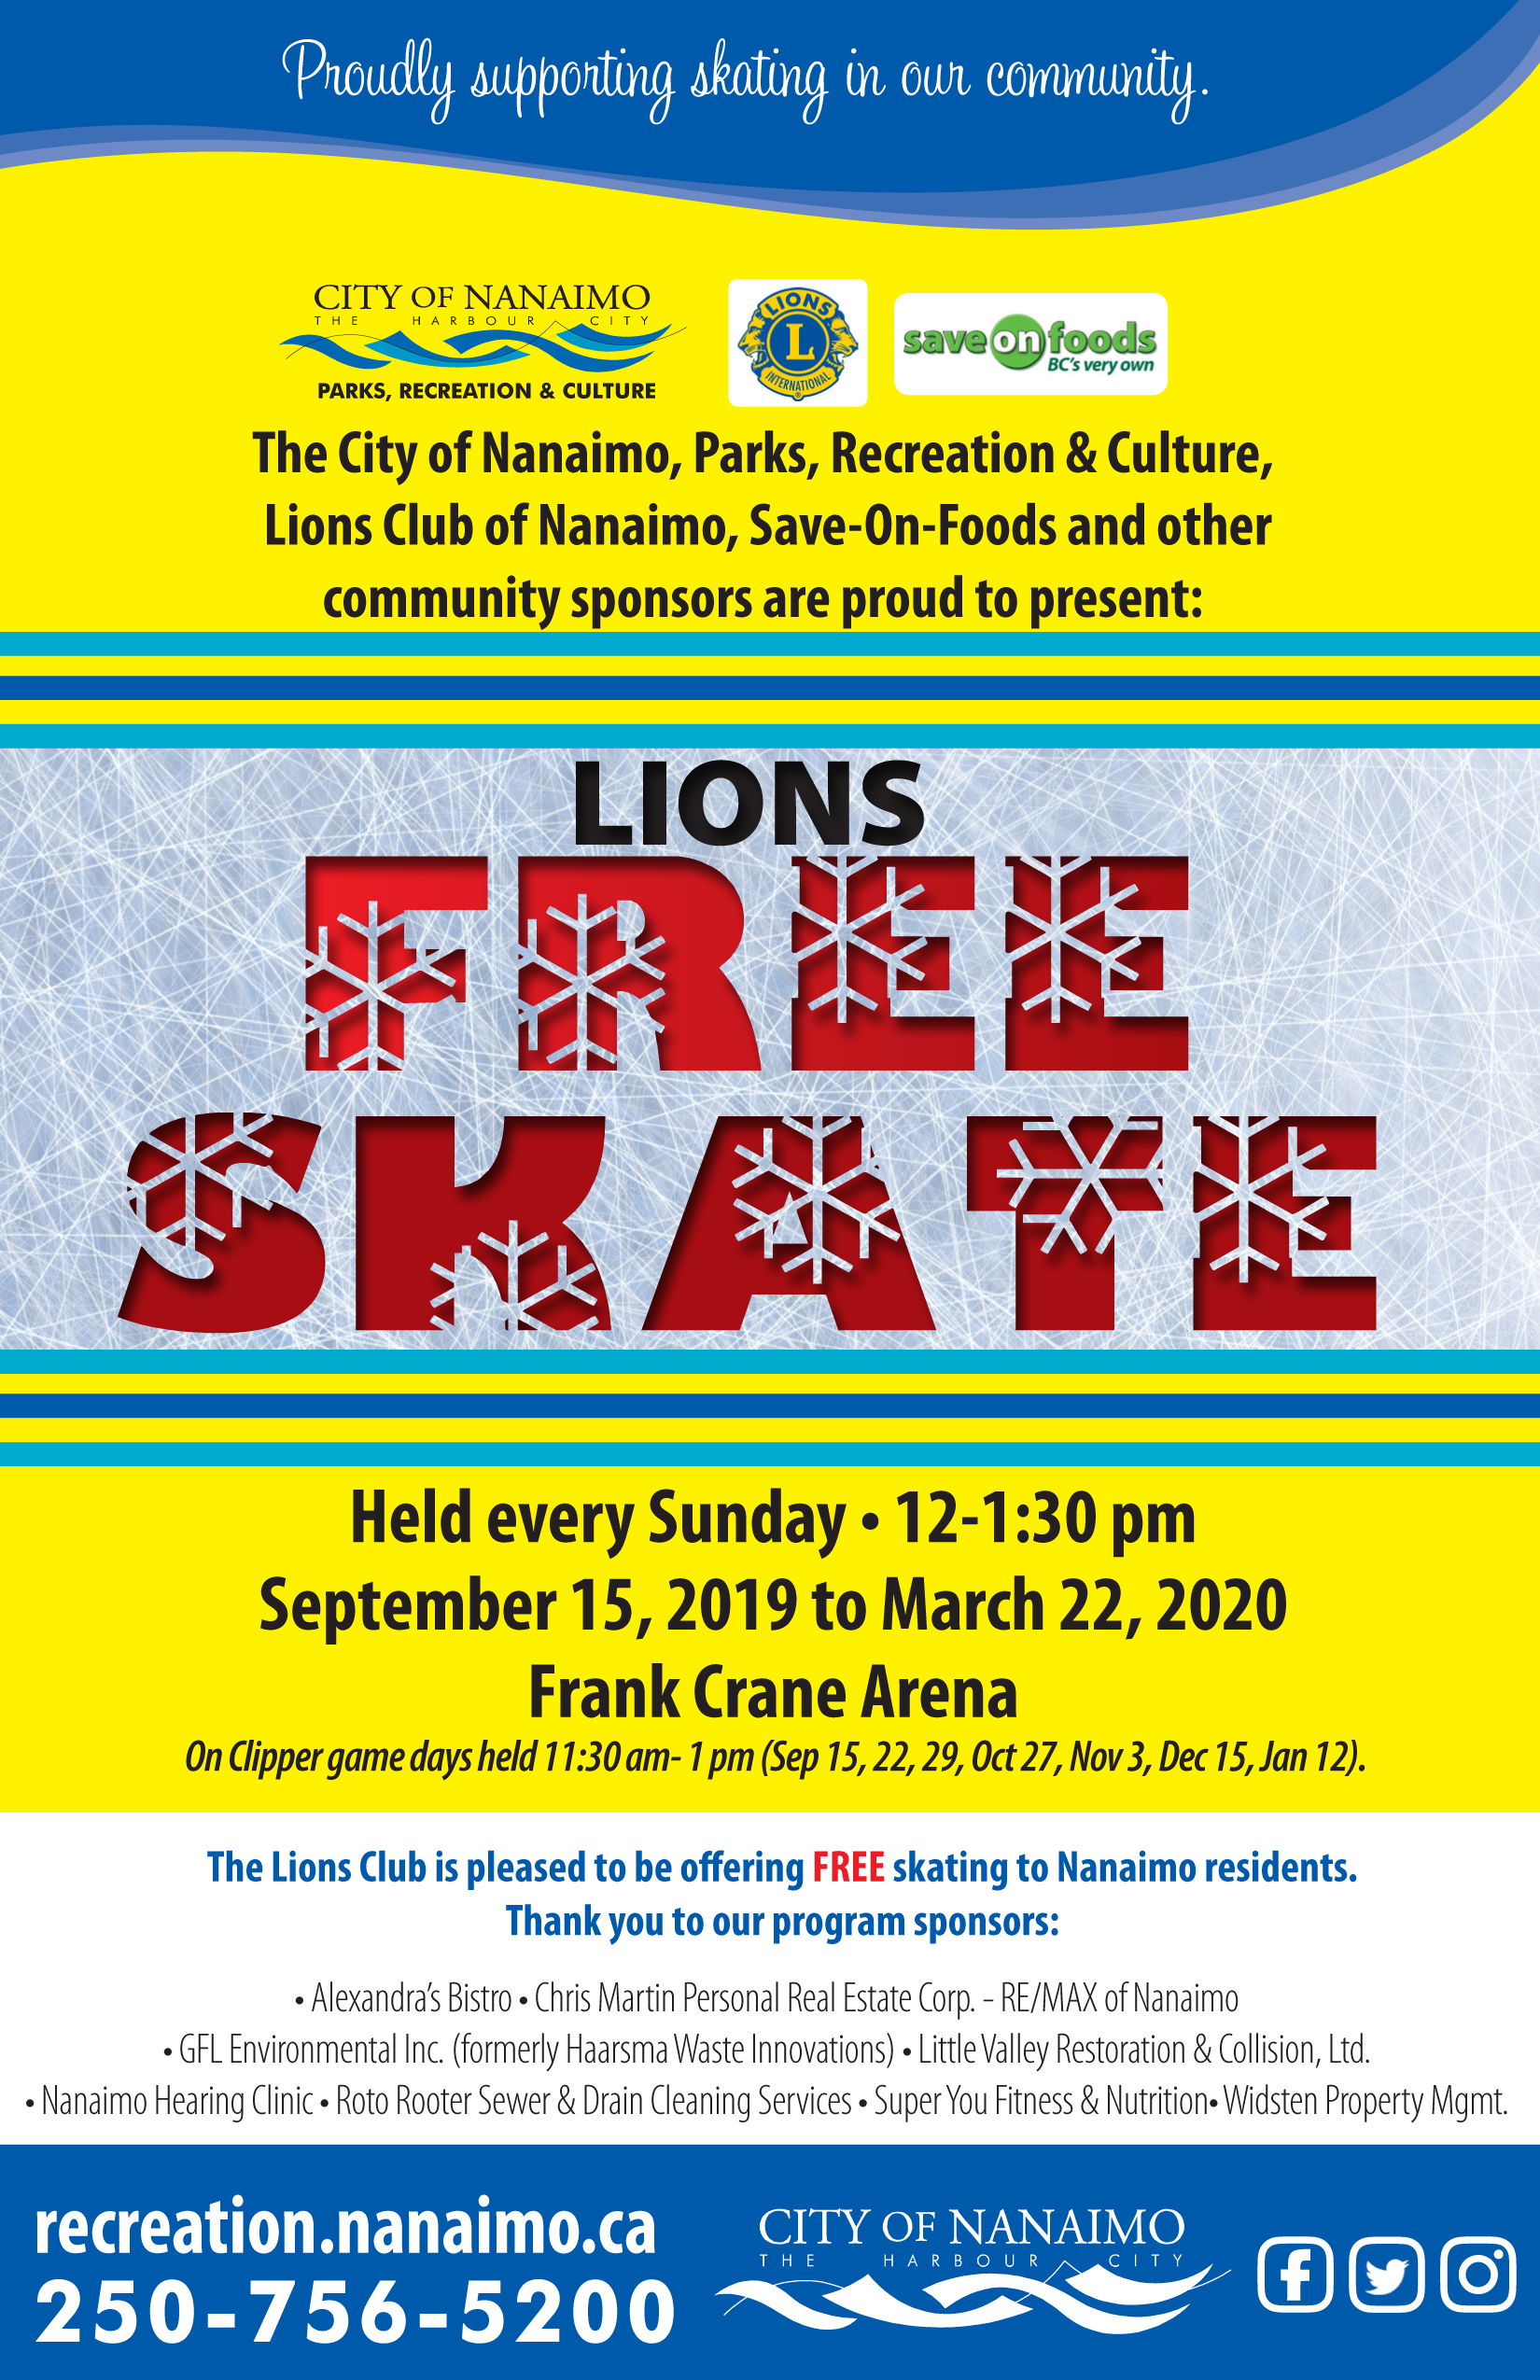 LionsFreeSkate poster 2019 fall winter